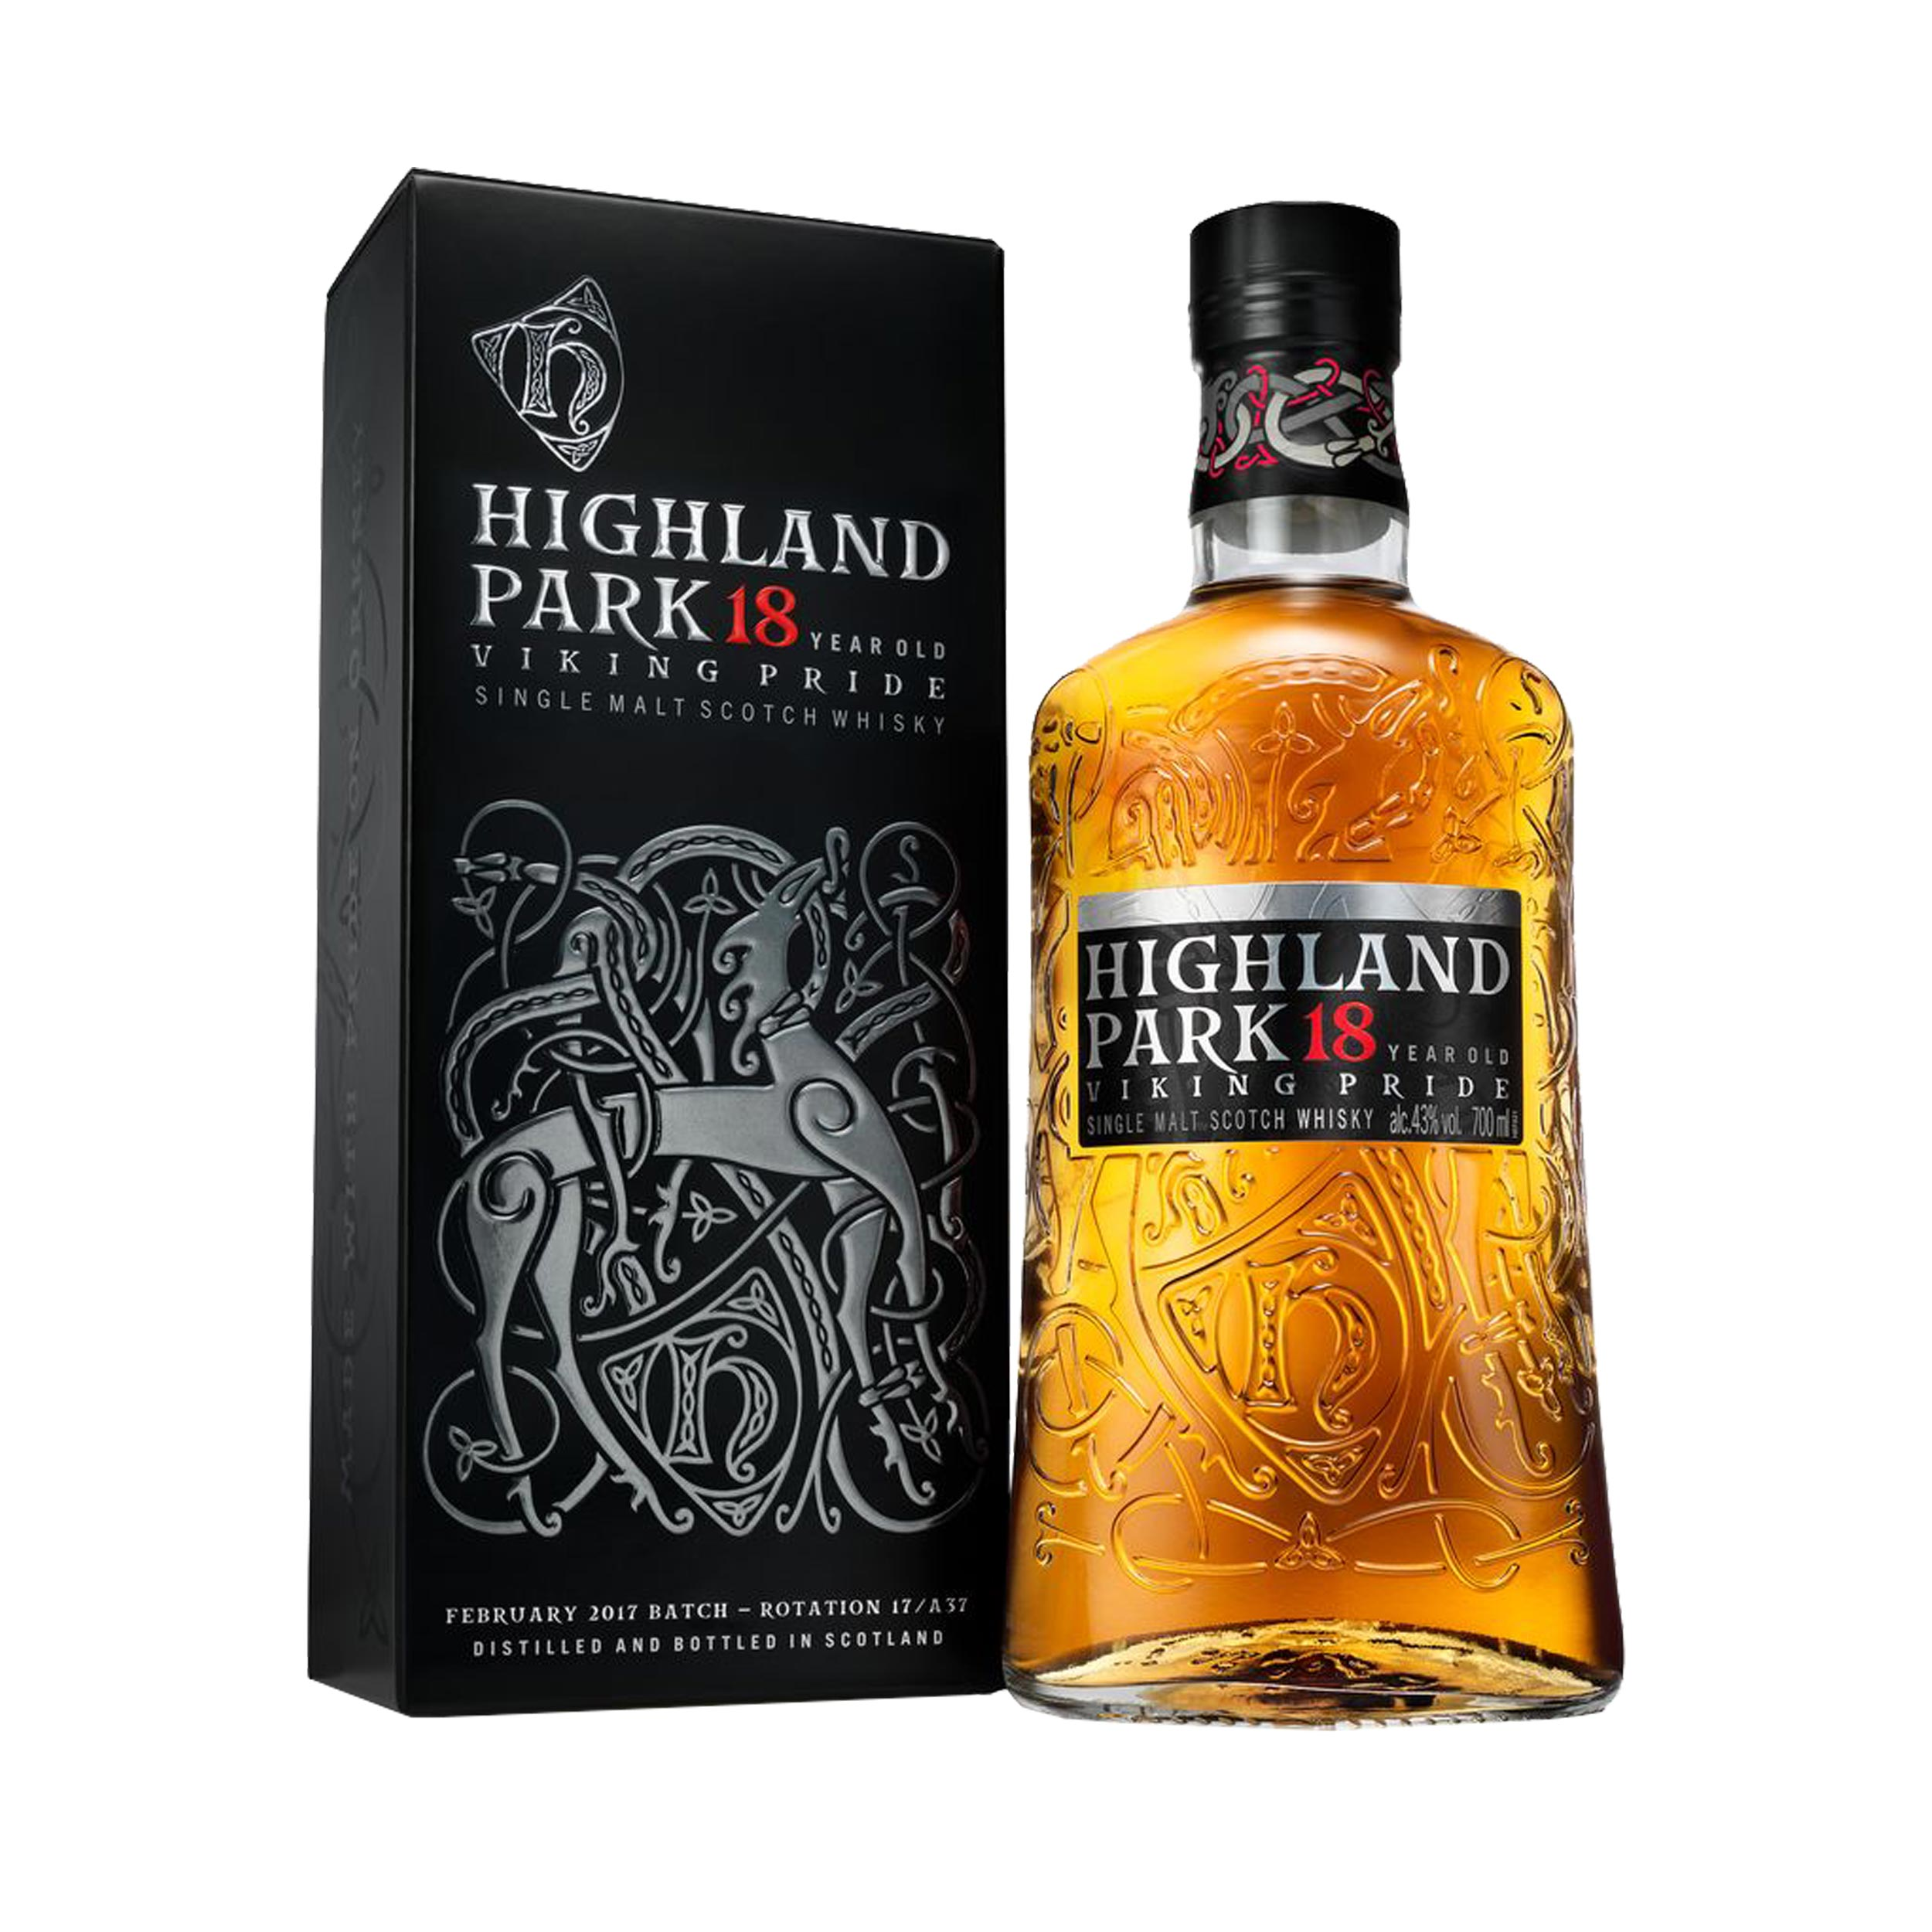 Highland Park 18 Year Old Island Single Malt Scotch Whisky 70cl